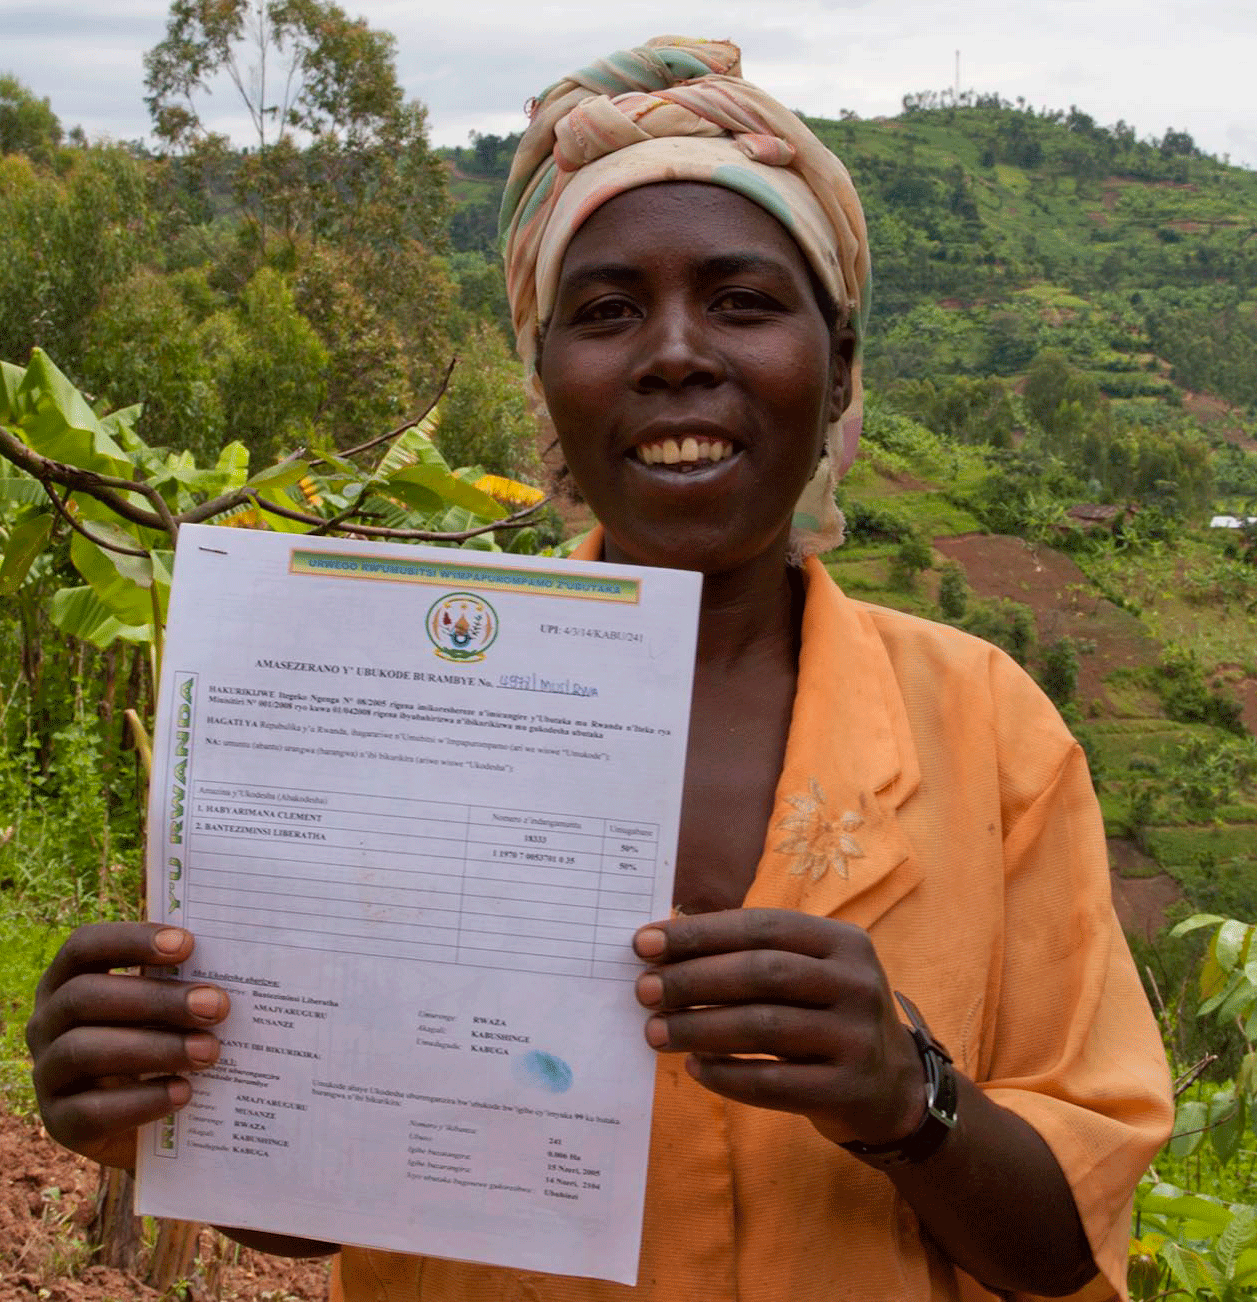 Land Rights Land Title Land Certificate Women's Land Rights